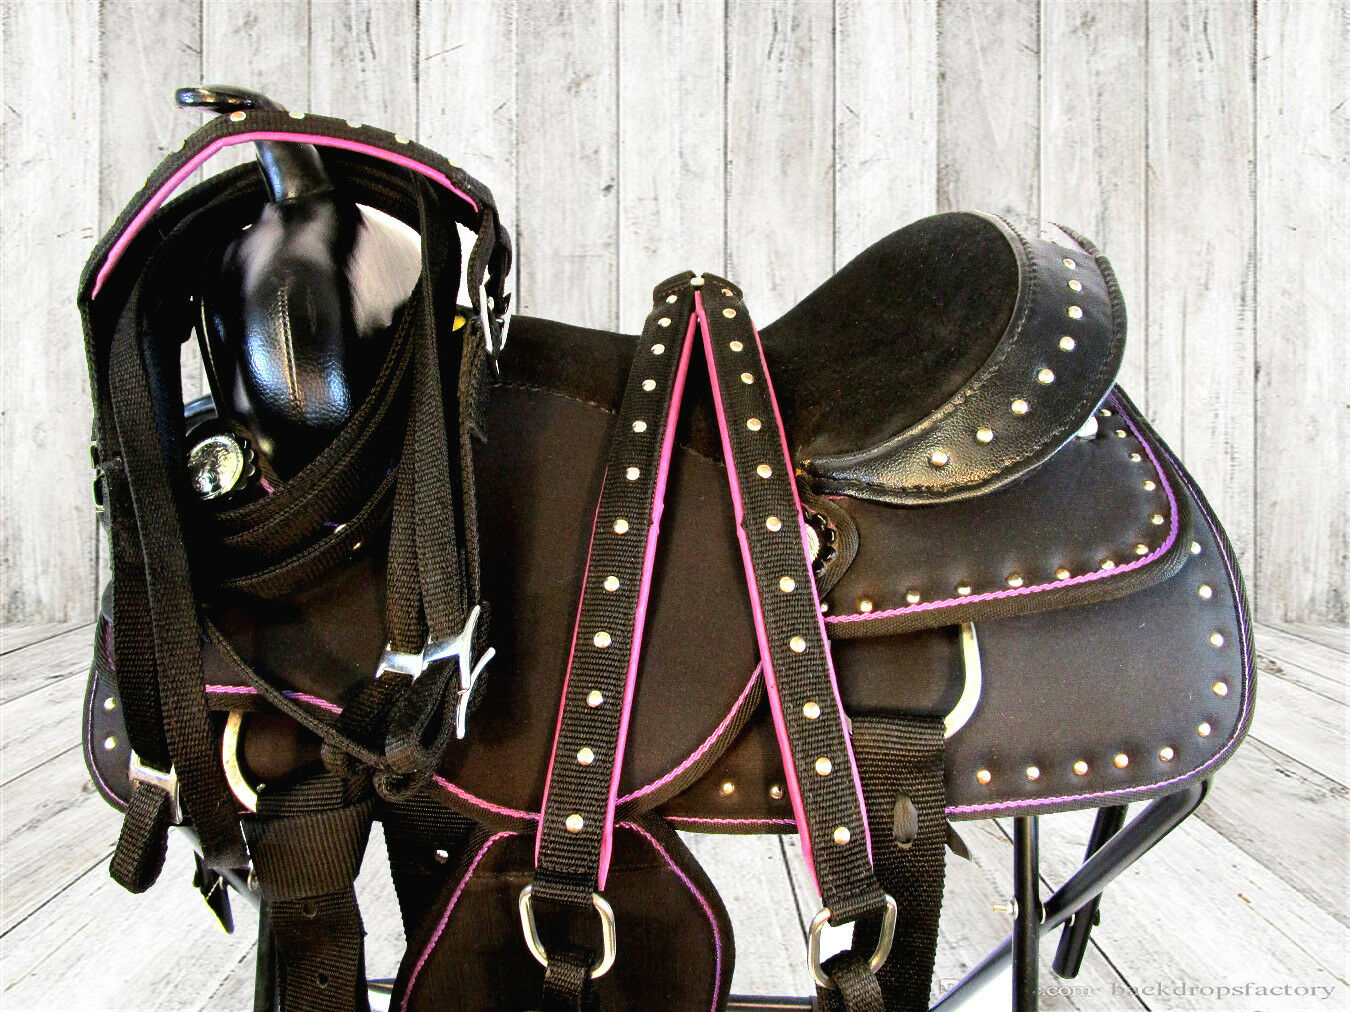 LIGHT WEIGHT CORDURA SYNTHETIC SHOW PURPLE BARREL WESTERN TRAIL SADDLE 15 16